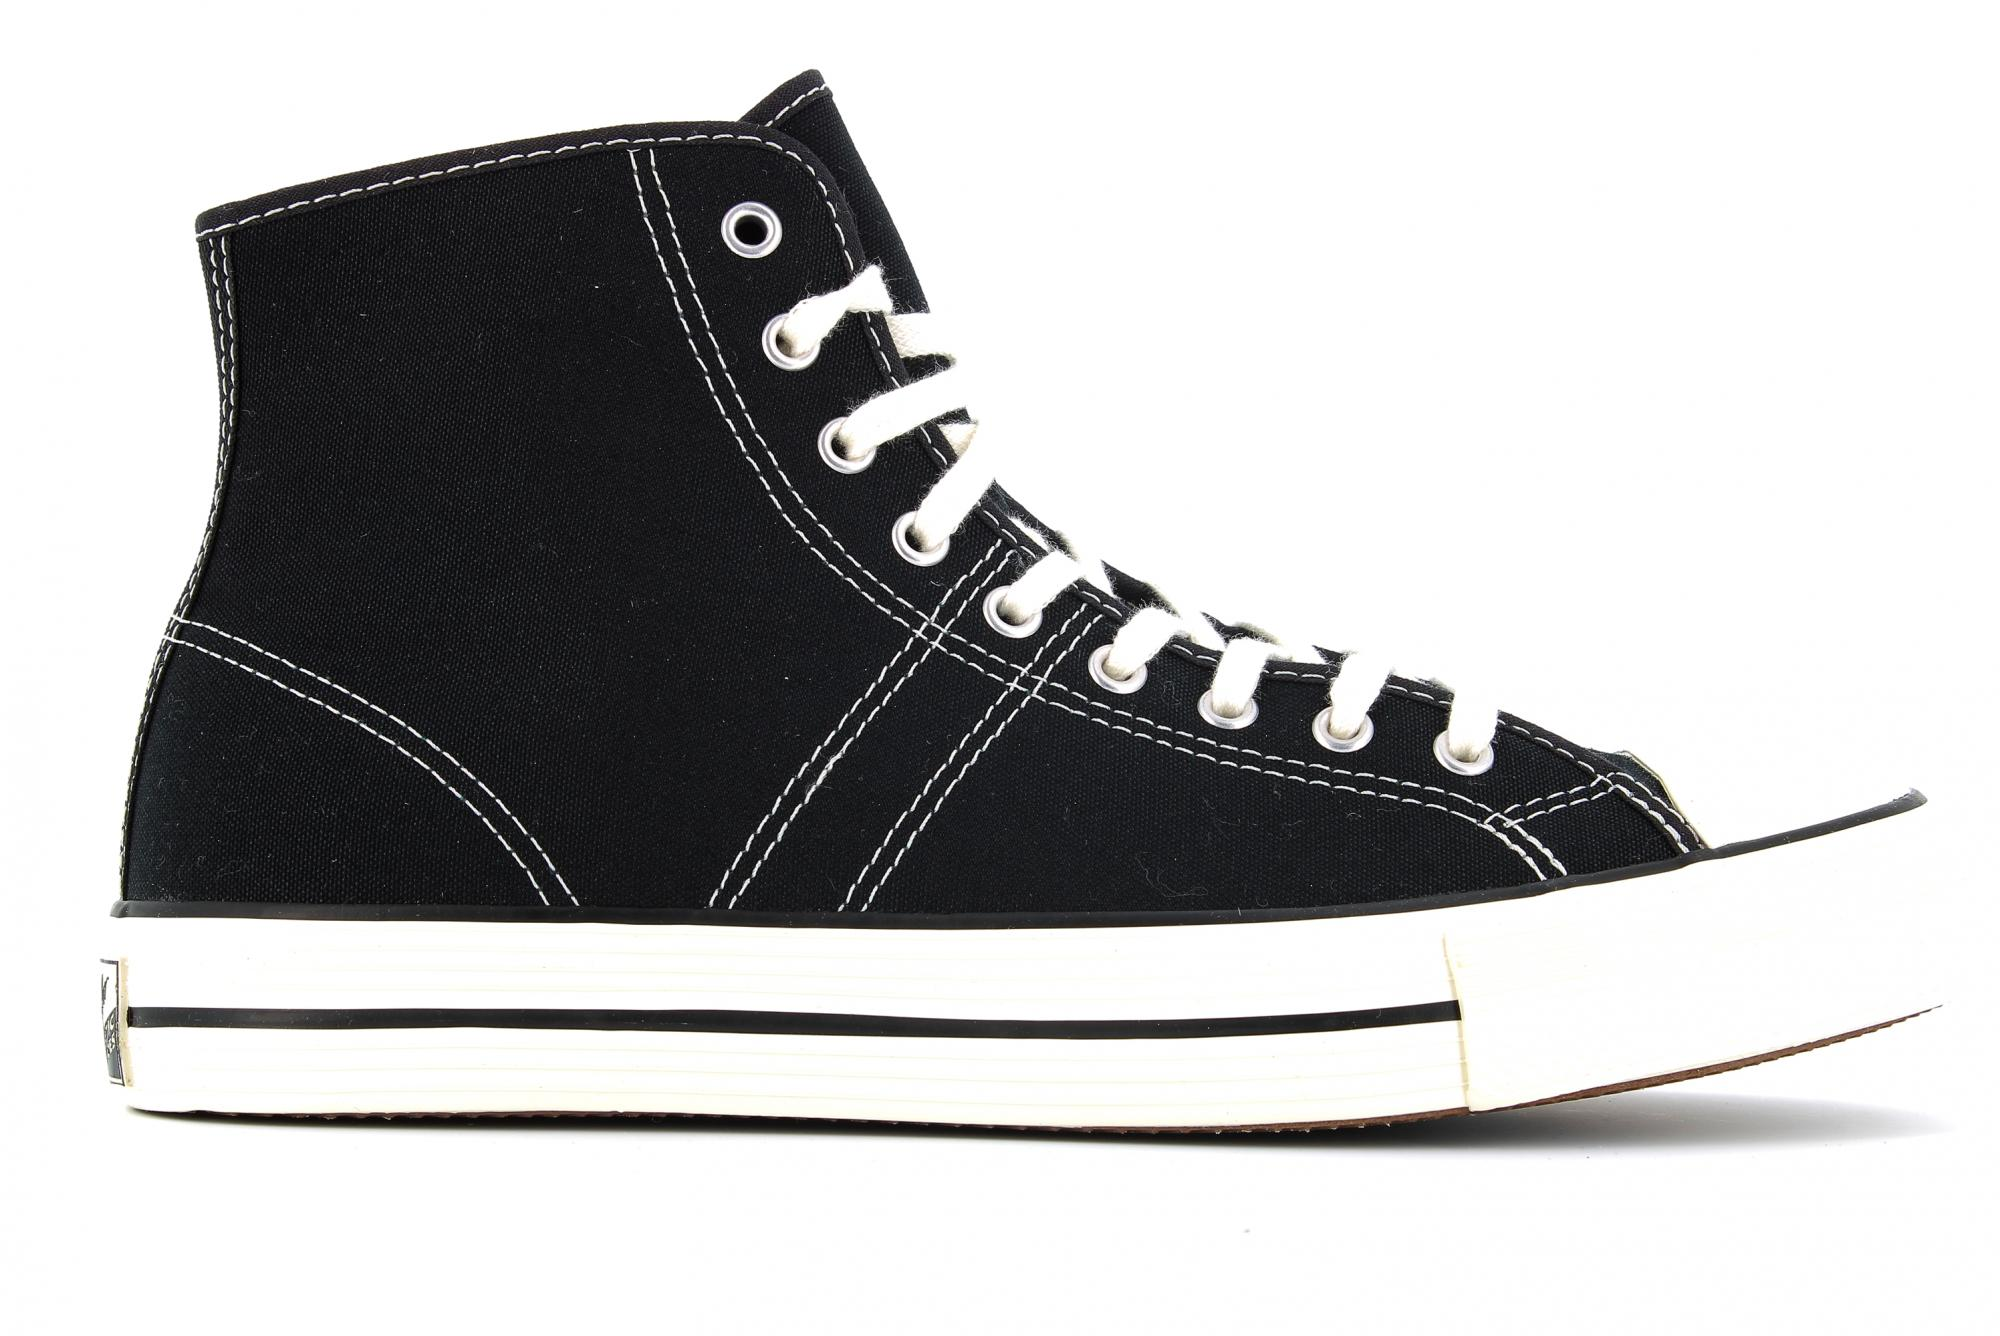 Details about Converse P19us shoes for men high sneakers 163321C CONVERSE LUCKY STAR